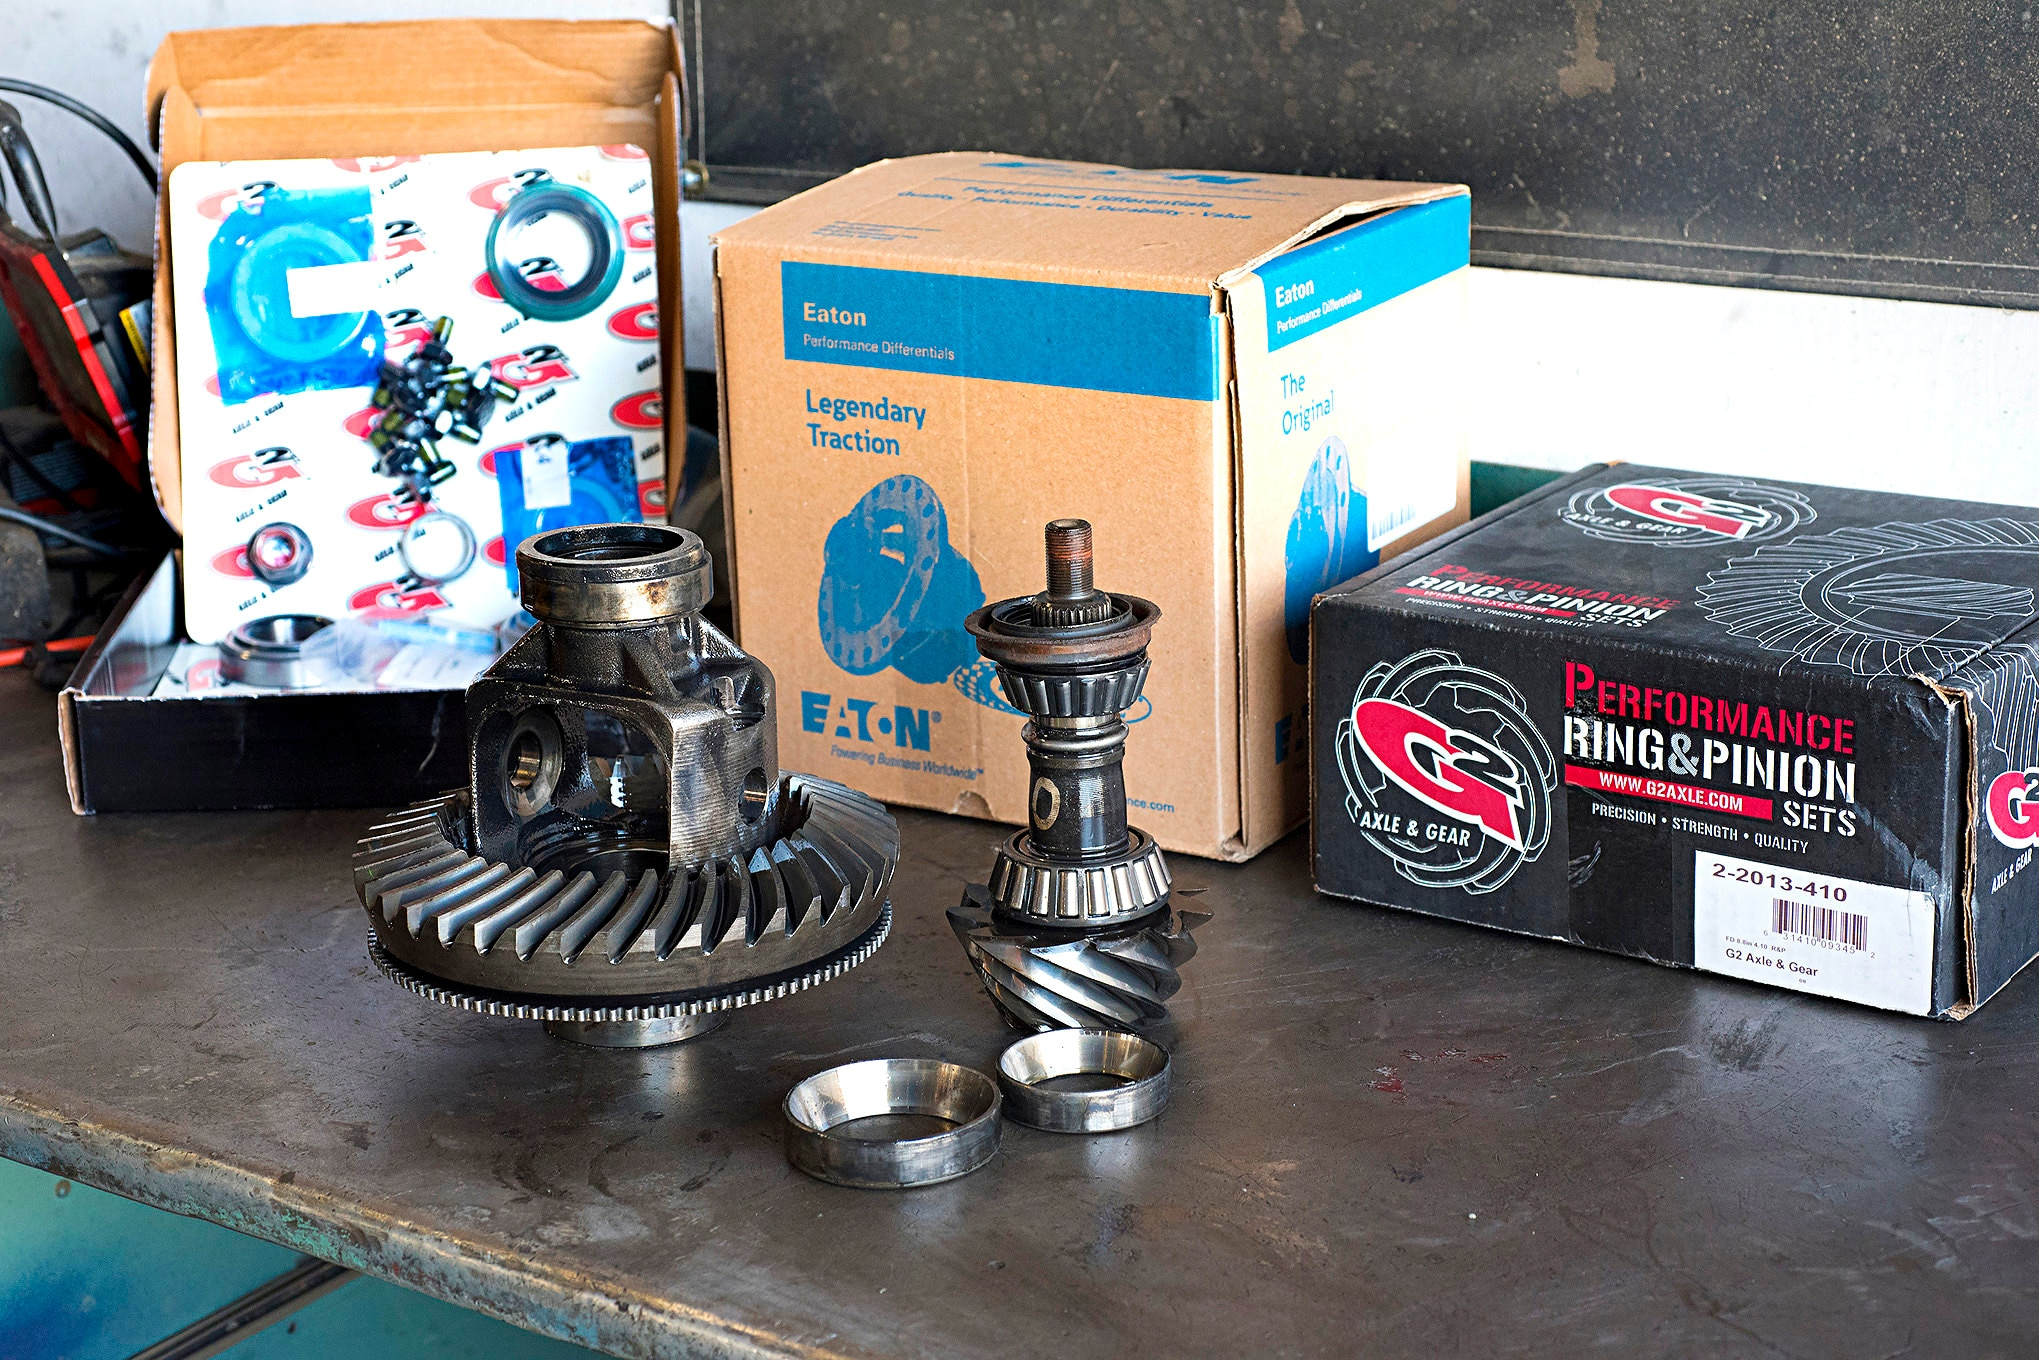 We replaced our Bronco's old differential parts using a G2 Master Installation Kit (PN 35-2013), G2 4.10:1 gearset (PN 2-2013-410), and a 31-spline Eaton Posi (PN 19588-010). Our four-wheeling is going to be light- to medium-level, so we didn't feel the need for a full diff locker at this time.